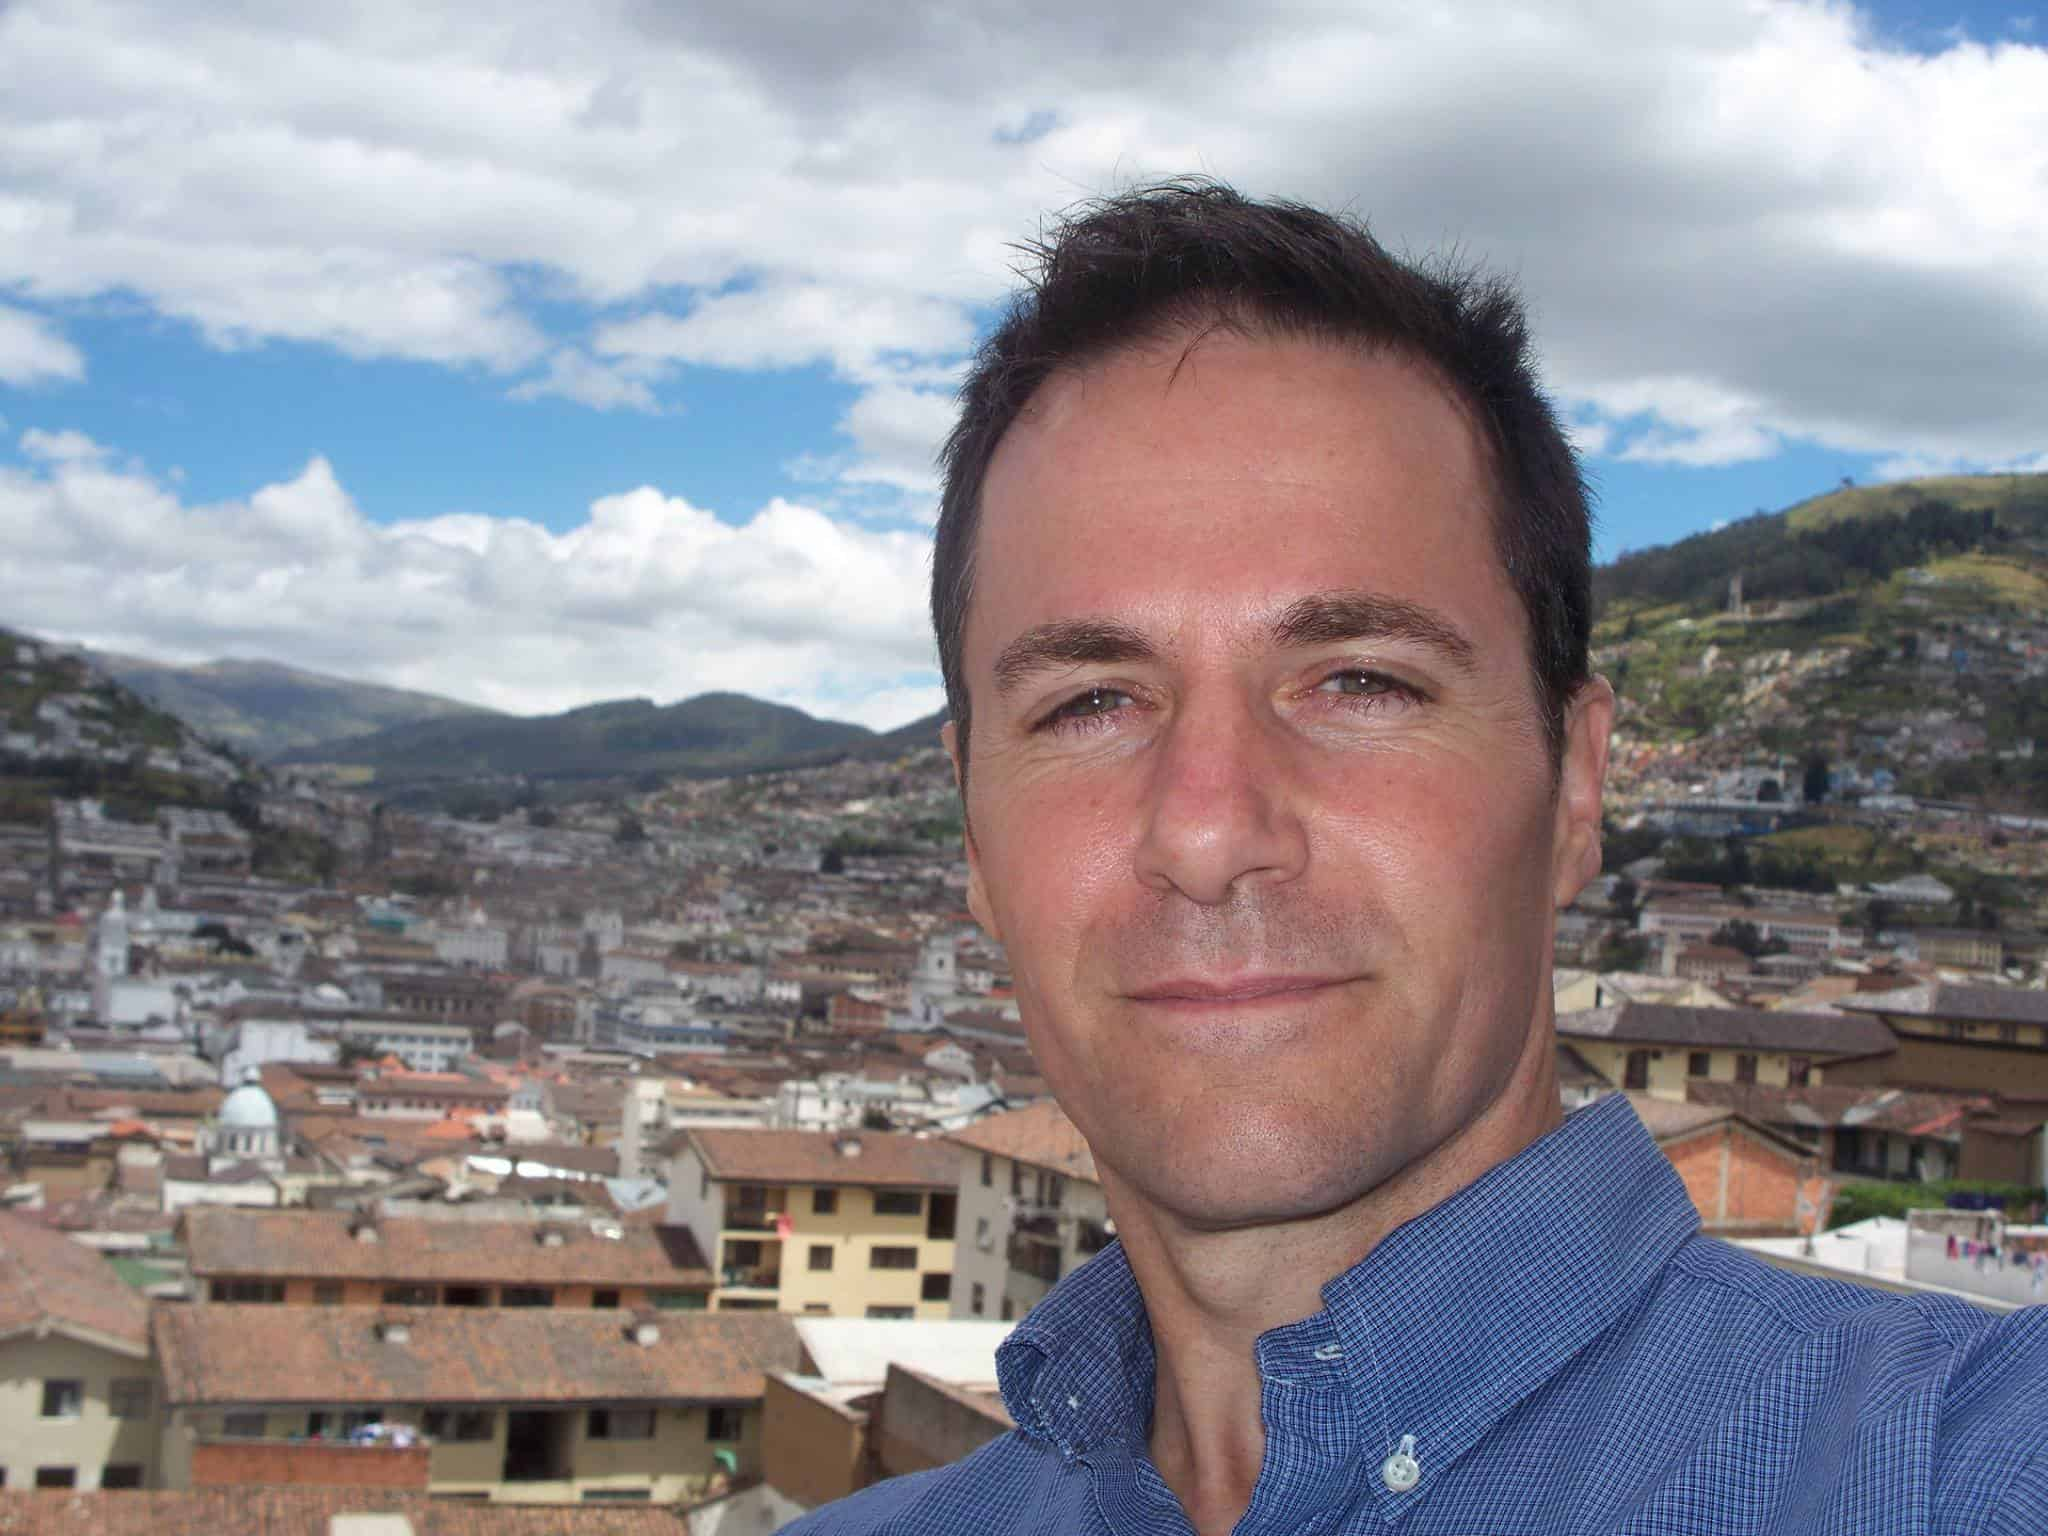 Steve Roller taking a selfie overlooking the city of Quito, Ecuador